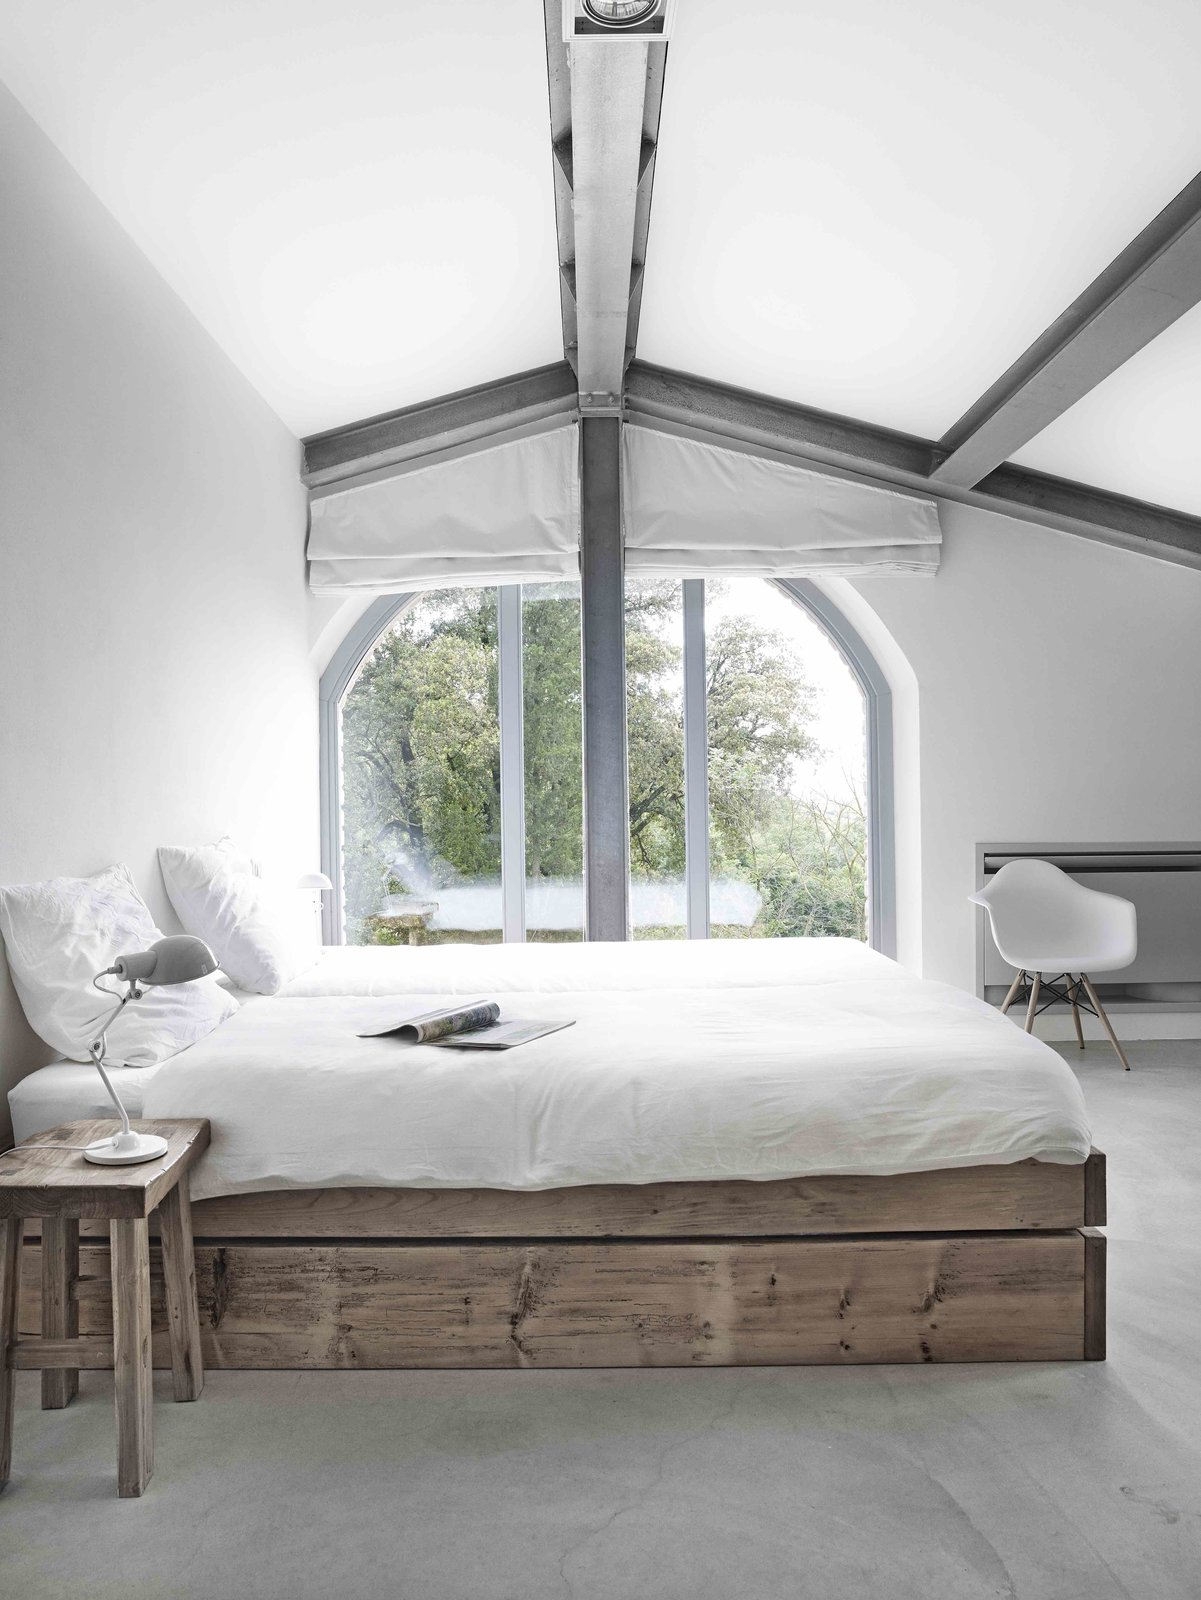 Bedroom, Chair, Night Stands, Concrete Floor, Bed, Table Lighting, and Lamps  Photo 6 of 11 in Stay in a Modern, Industrial Home That's Hidden Inside a Traditional Tuscan Villa